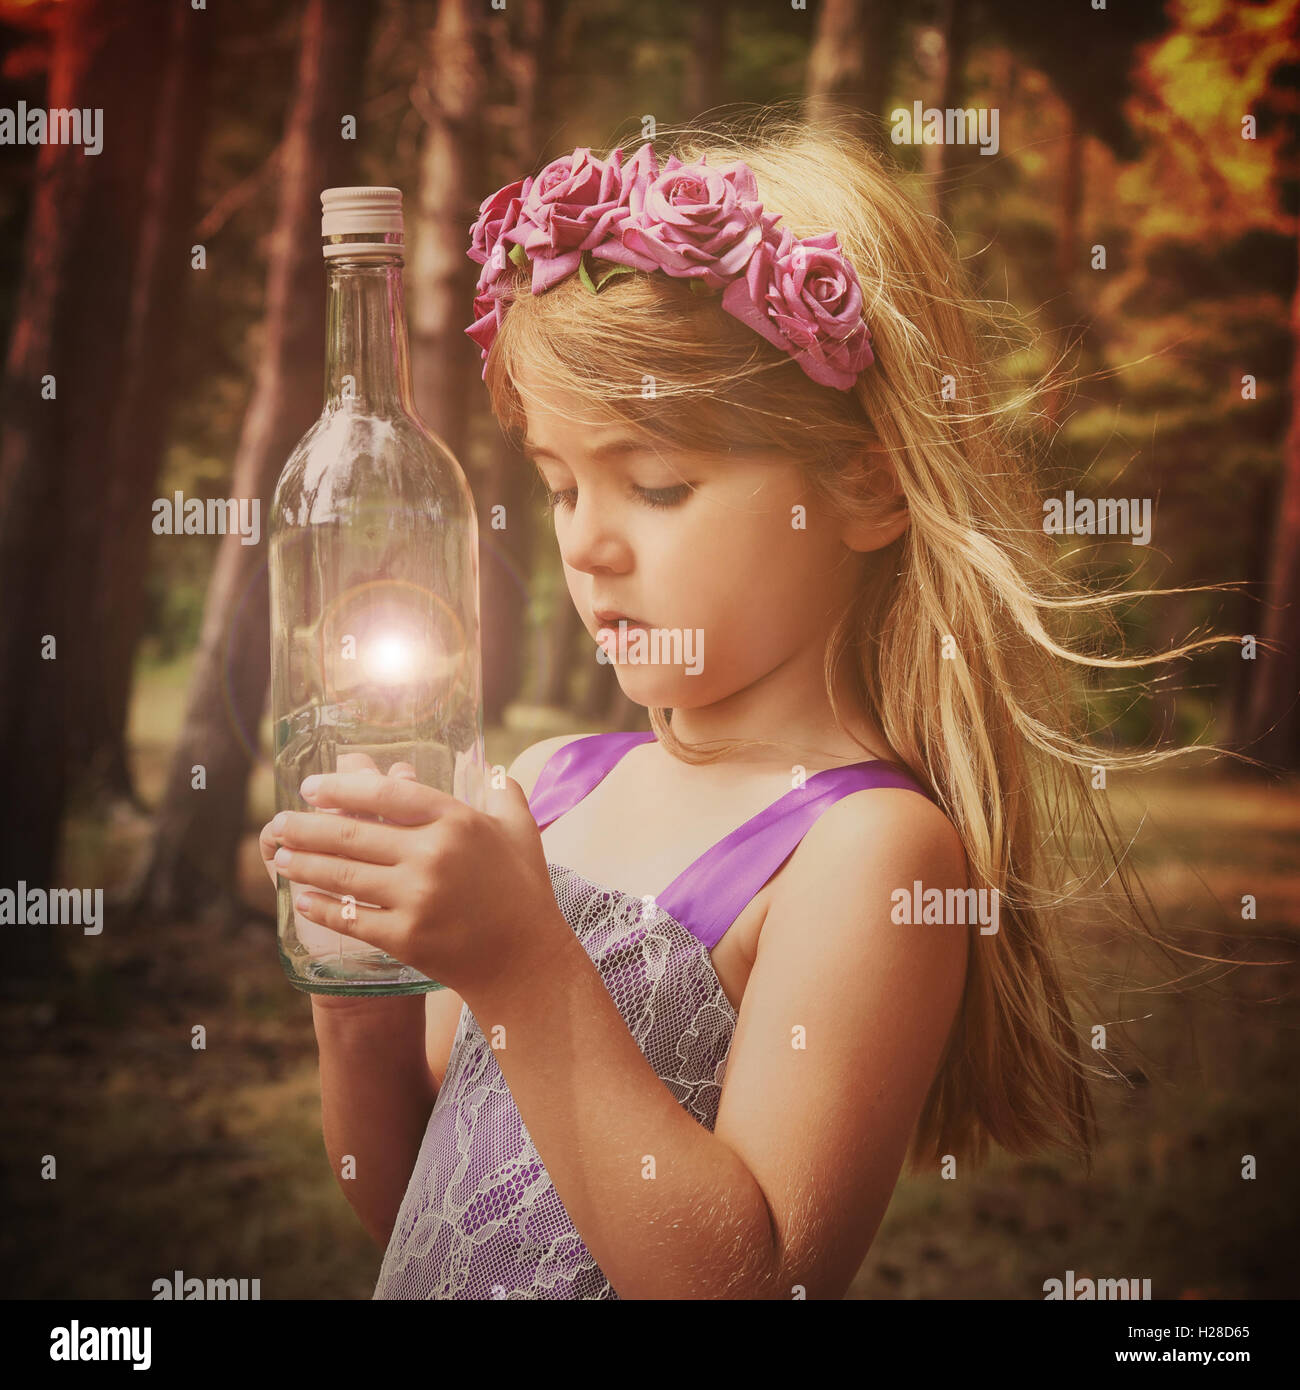 A little fairy girl is in the woods with looking at a magical bottle for an imagination or fantasy concept. Stock Photo